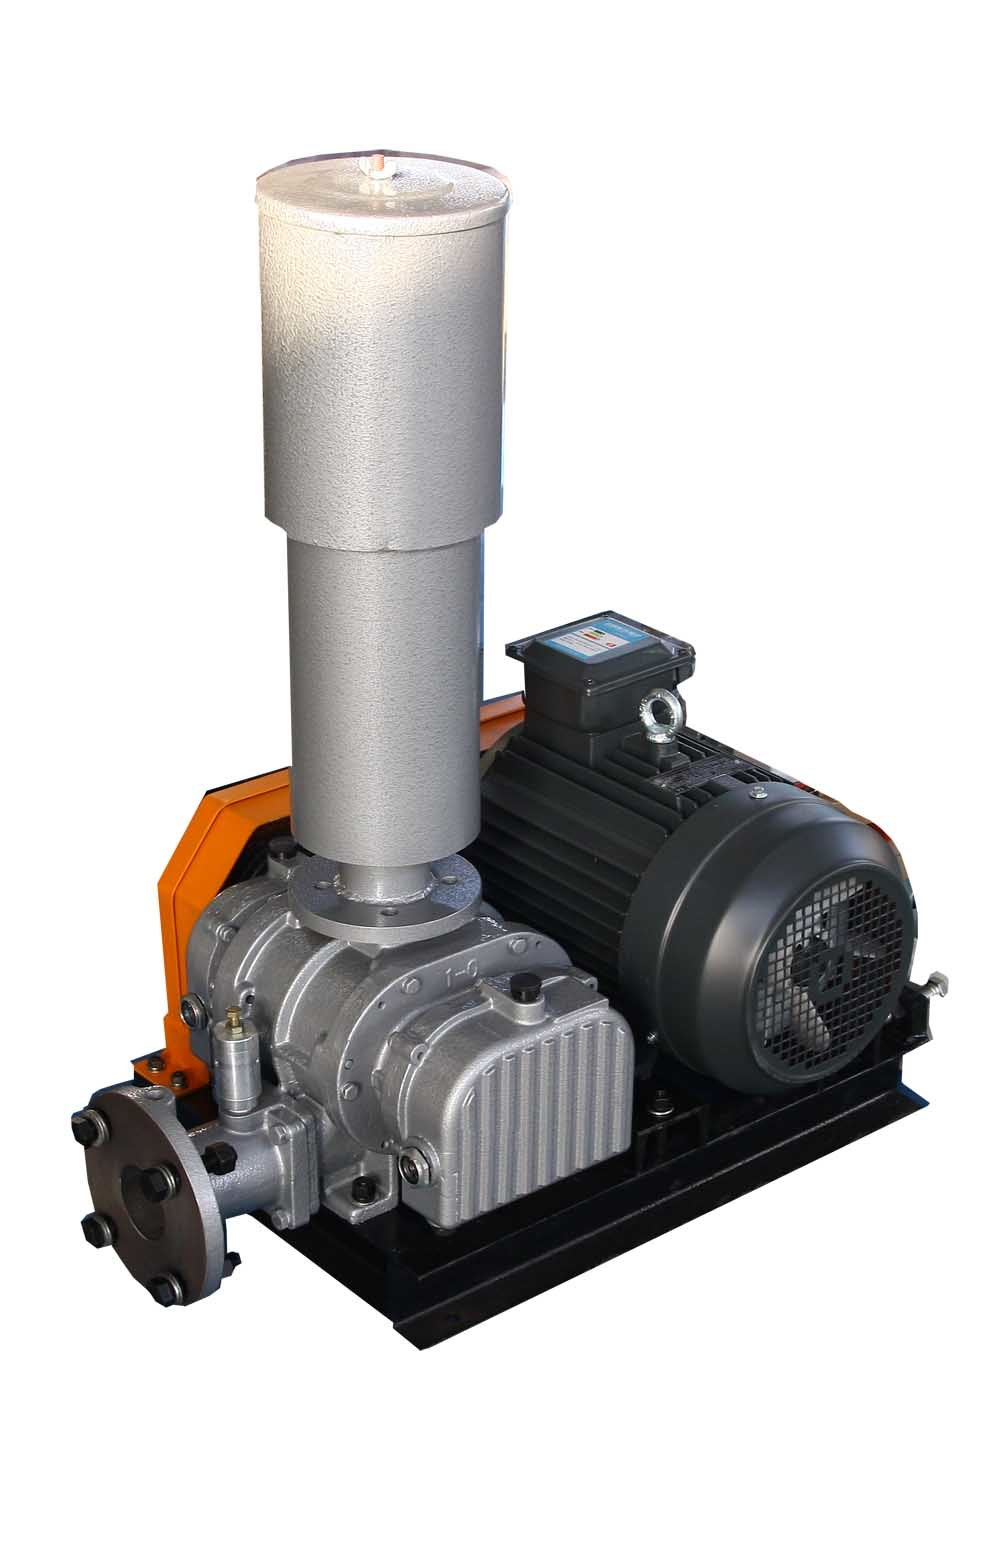 Roots Blower for Water Treatment (NSRH)